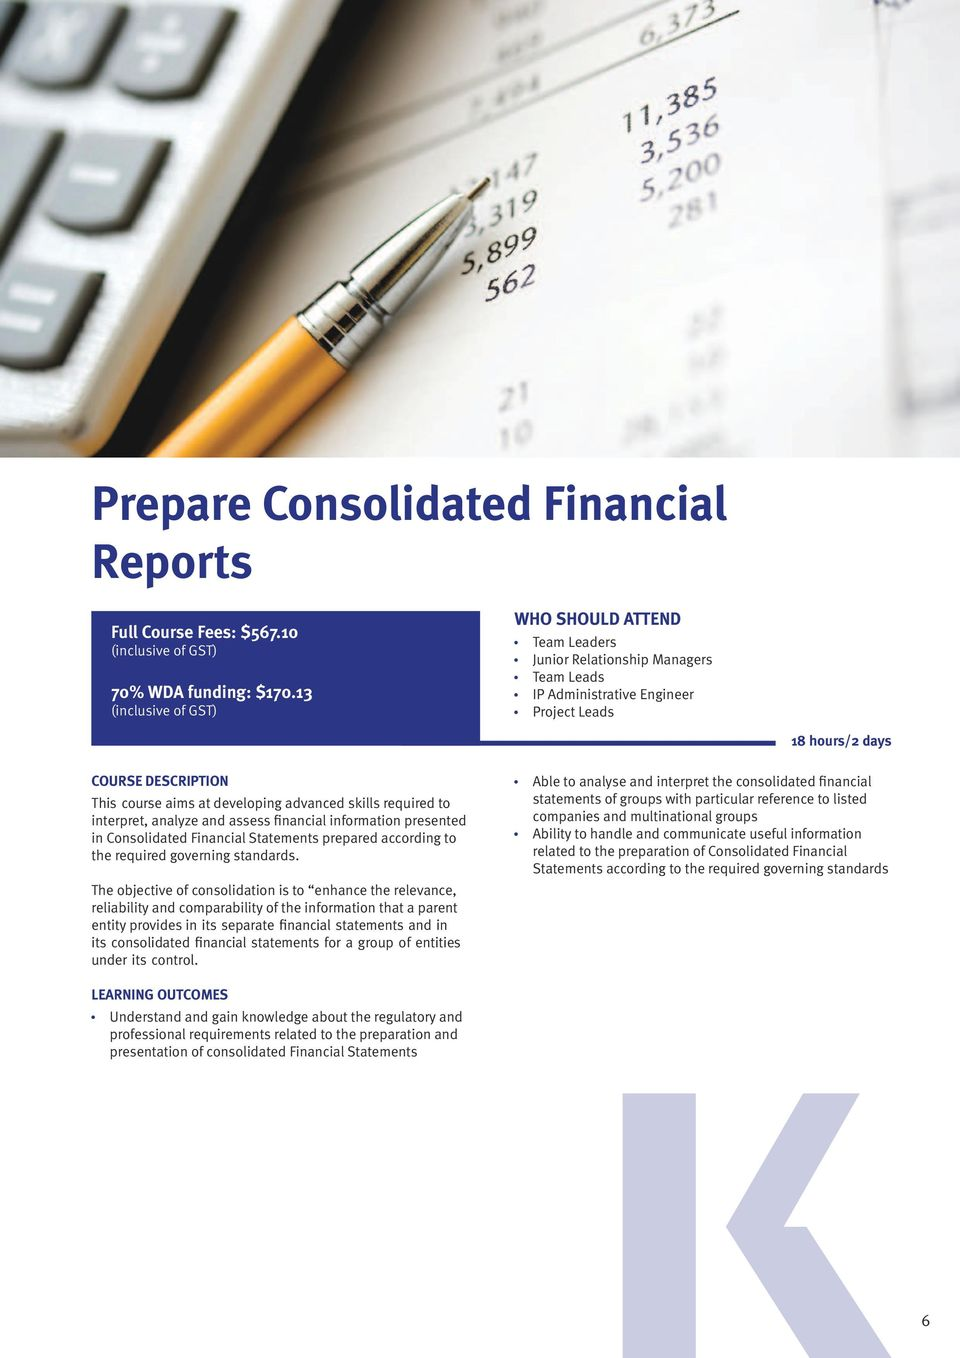 assess financial information presented in Consolidated Financial Statements prepared according to the required governing standards.